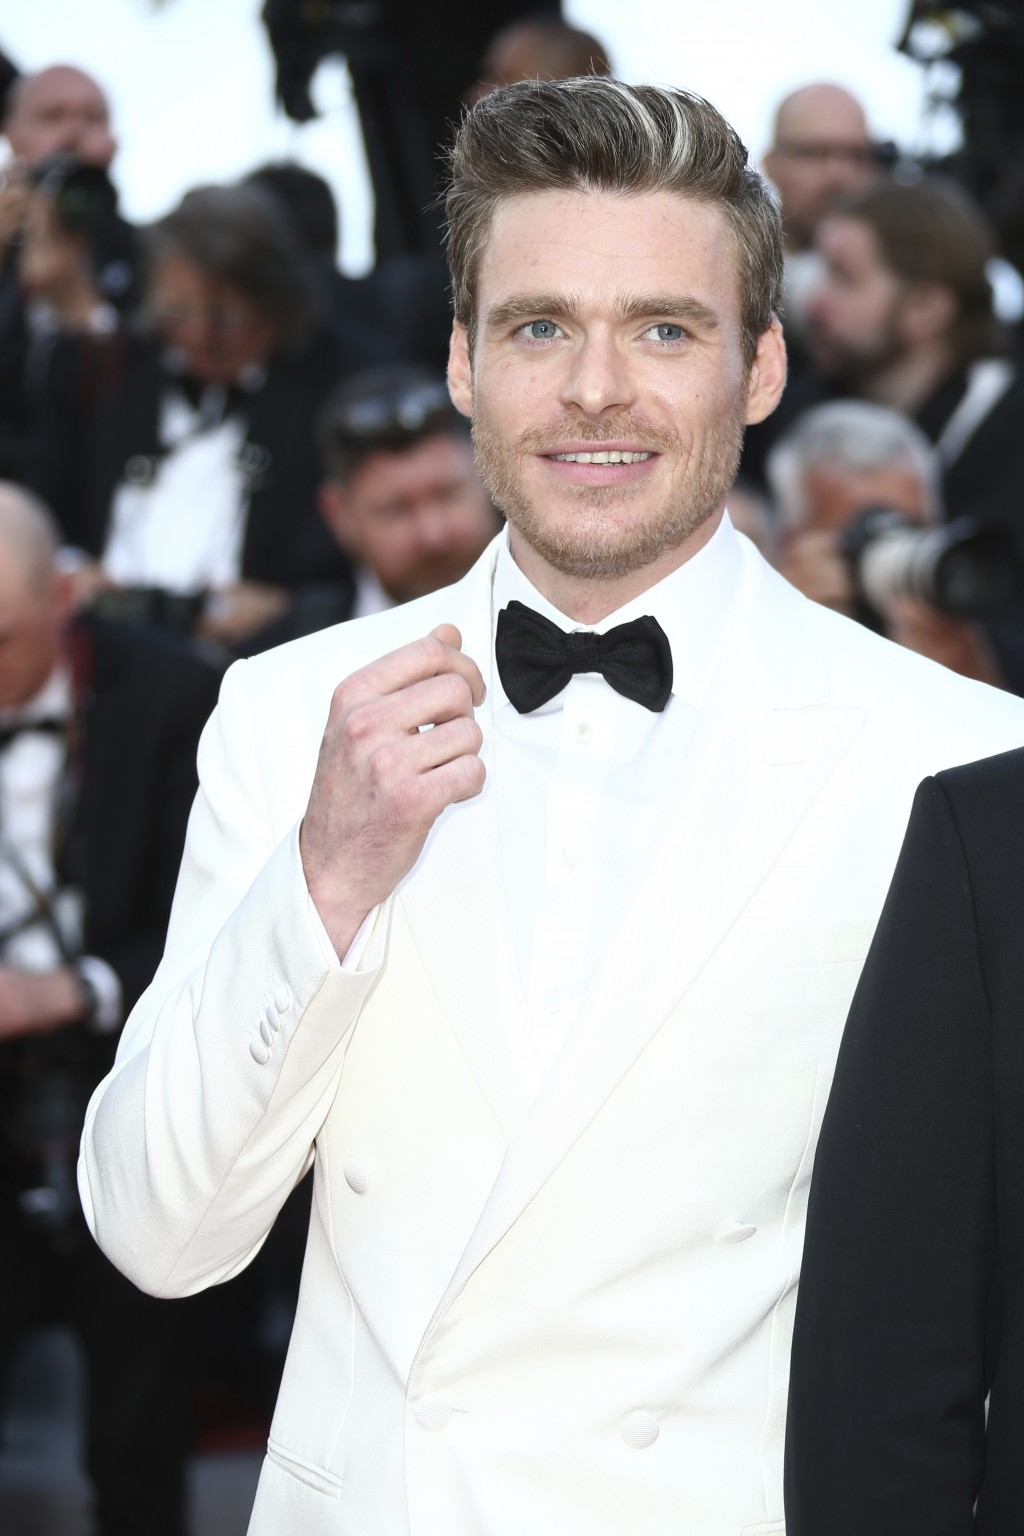 Actor Richard Madden poses for photographers upon arrival at the premiere of the film 'Rocketman' at the 72nd international film festival, Cannes, sou...